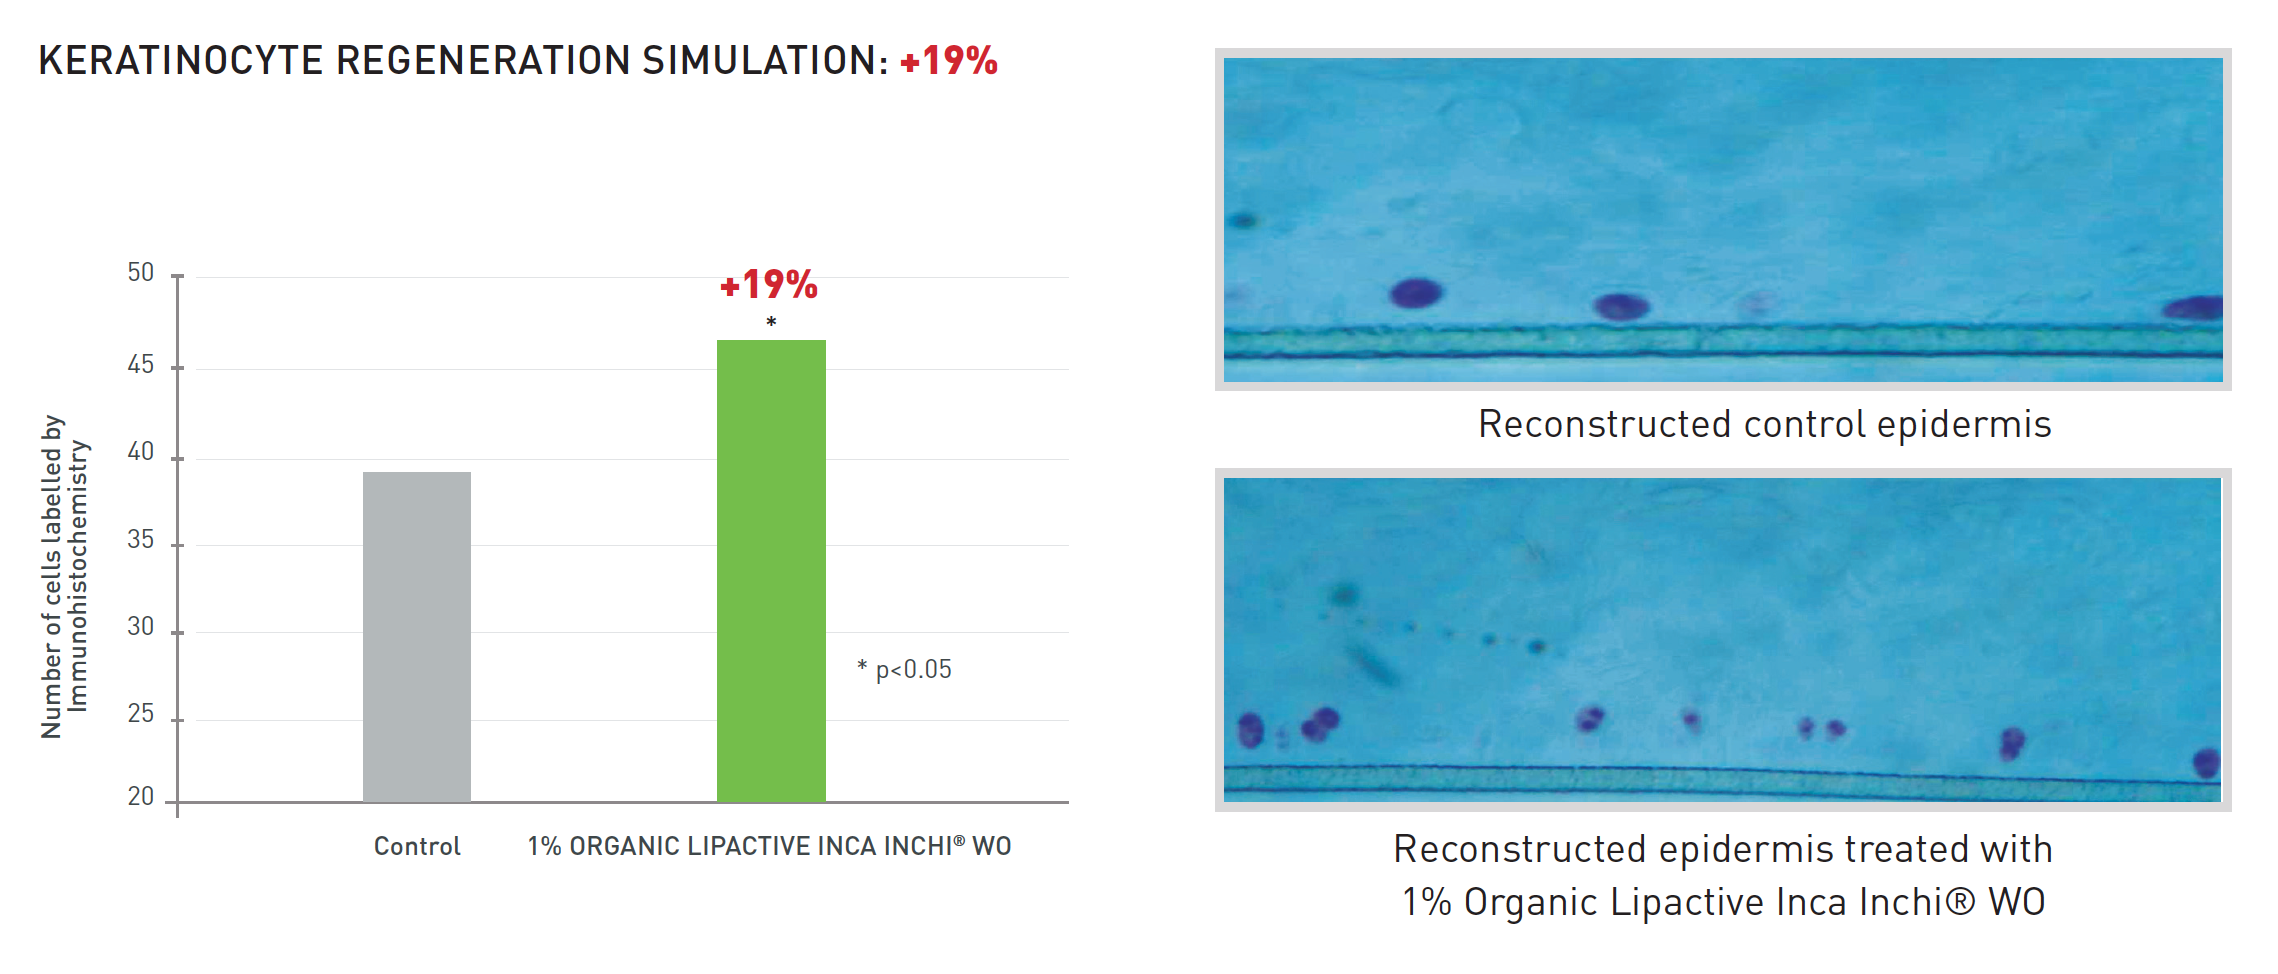 Keratinocyte Regenration Simulation: +19% vs. Control. Reconstructed epidermis microscopic imagery vs. control.